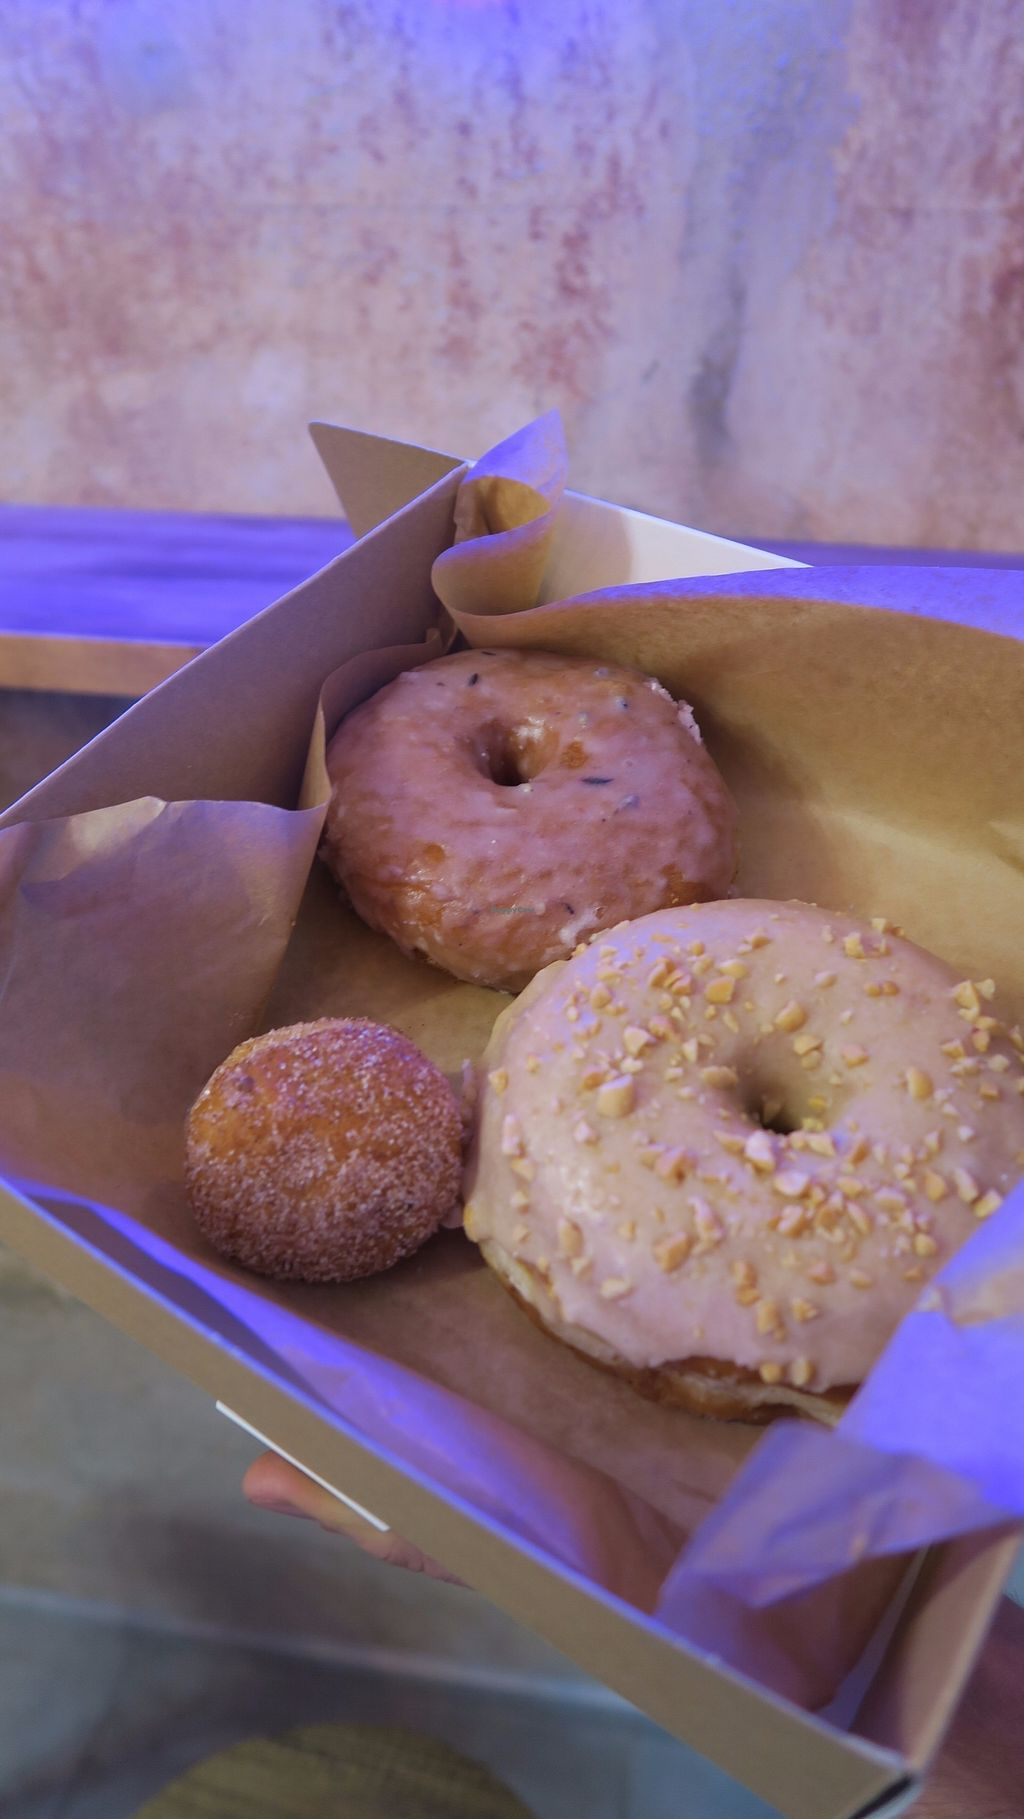 """Photo of Donut Shop  by <a href=""""/members/profile/Nikolate"""">Nikolate</a> <br/>vegan donuts and mini bun <br/> September 23, 2017  - <a href='/contact/abuse/image/97758/307373'>Report</a>"""